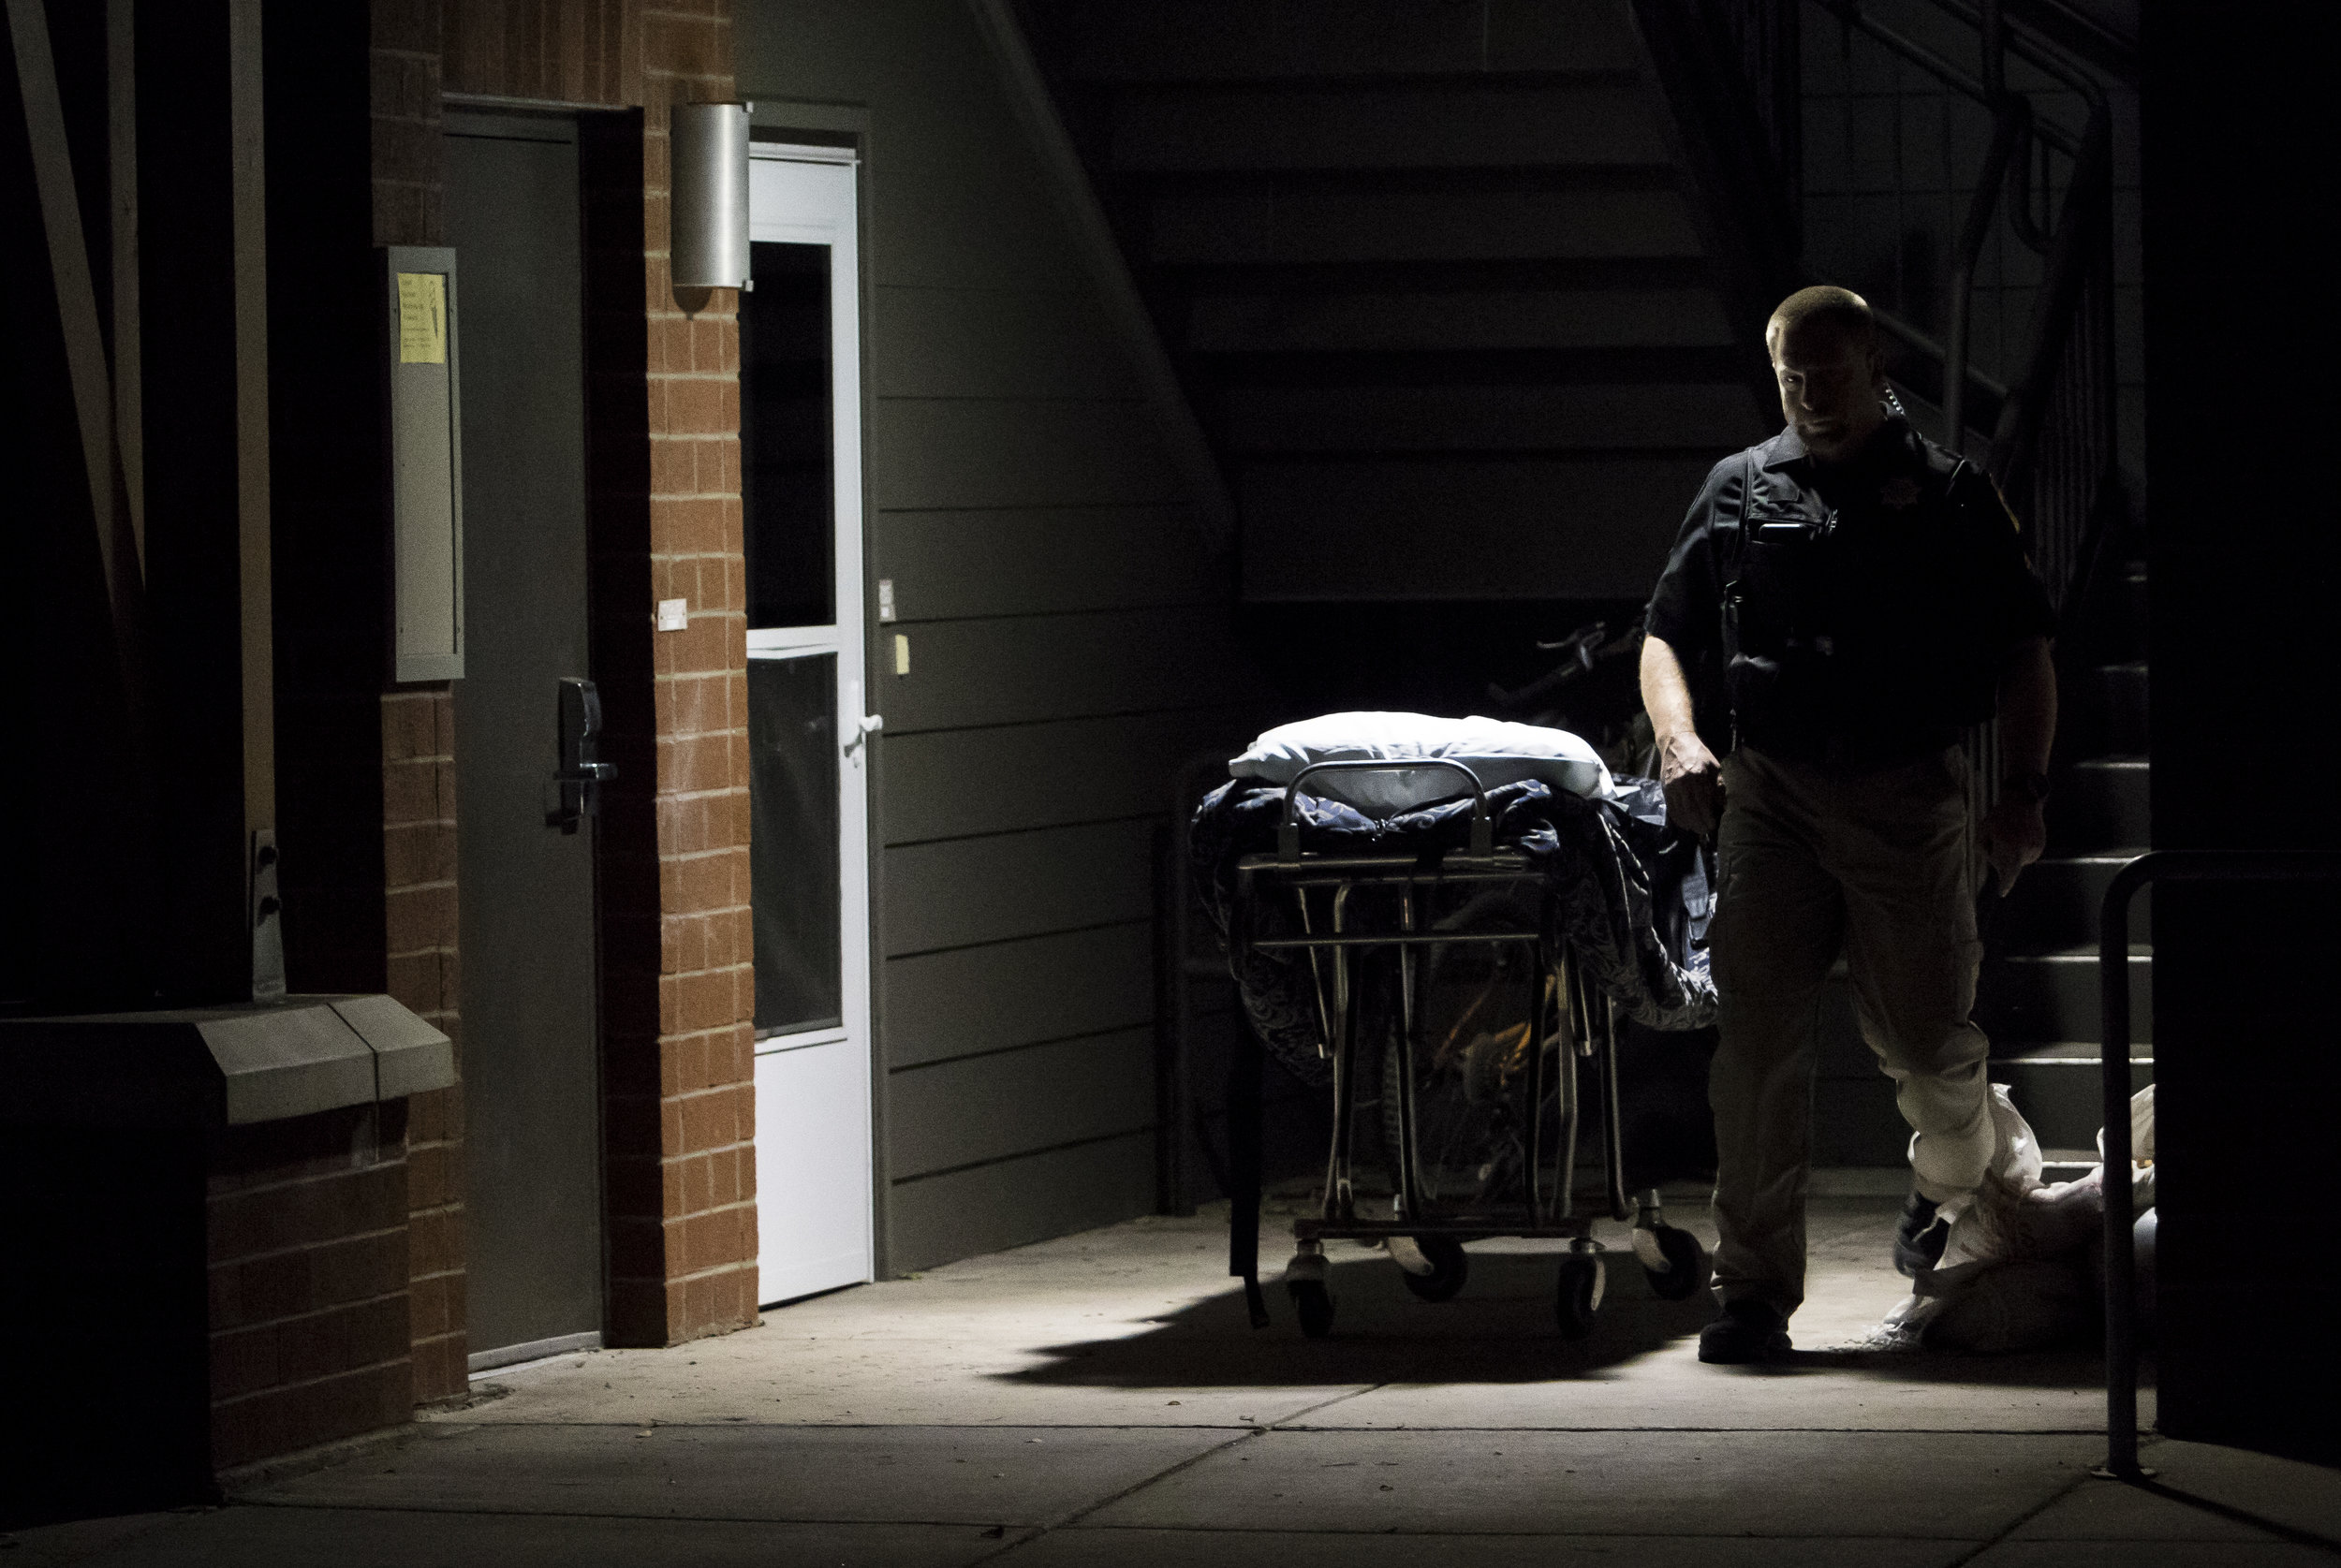 A police officer walks by an empty gurney on the first floor of building H in the Lewis and Clark Villages in Missoula, Mont. on Sept. 17, 2016. Police were called to the scene at 5:15 p.m. after a student's body was found. (Lacey Young, Montana Kaimin)